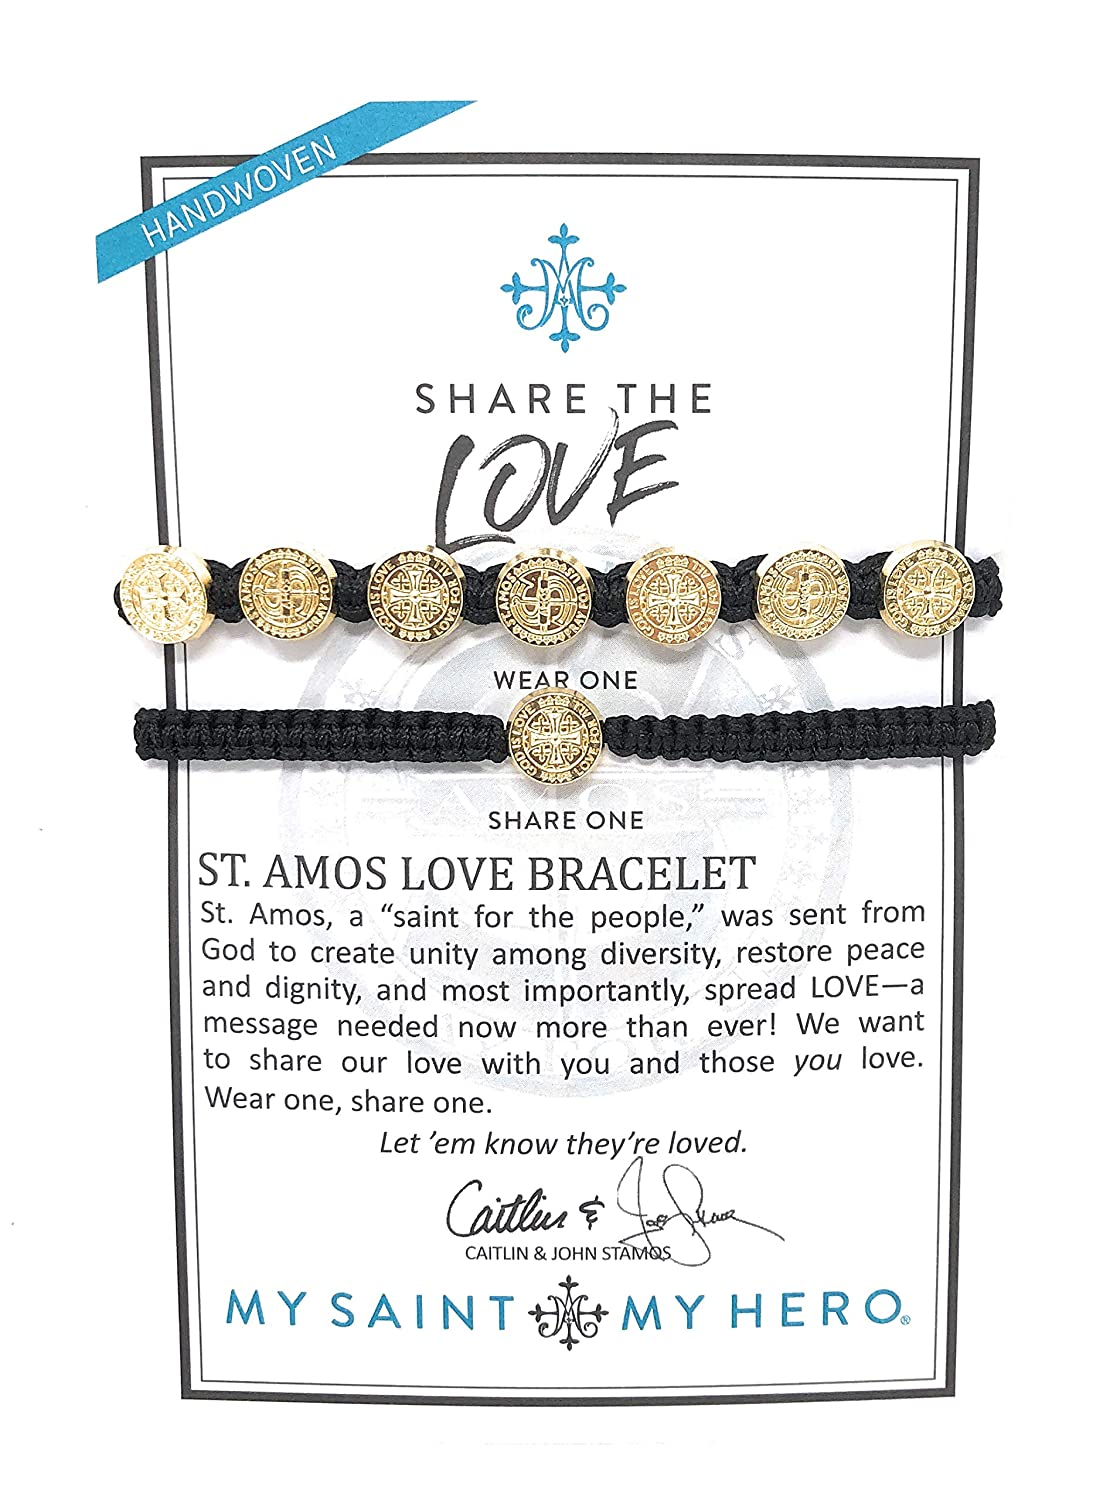 Woven Religious Medals Bracelets St Amos Bracelet Set My Saint My Hero Share The Love